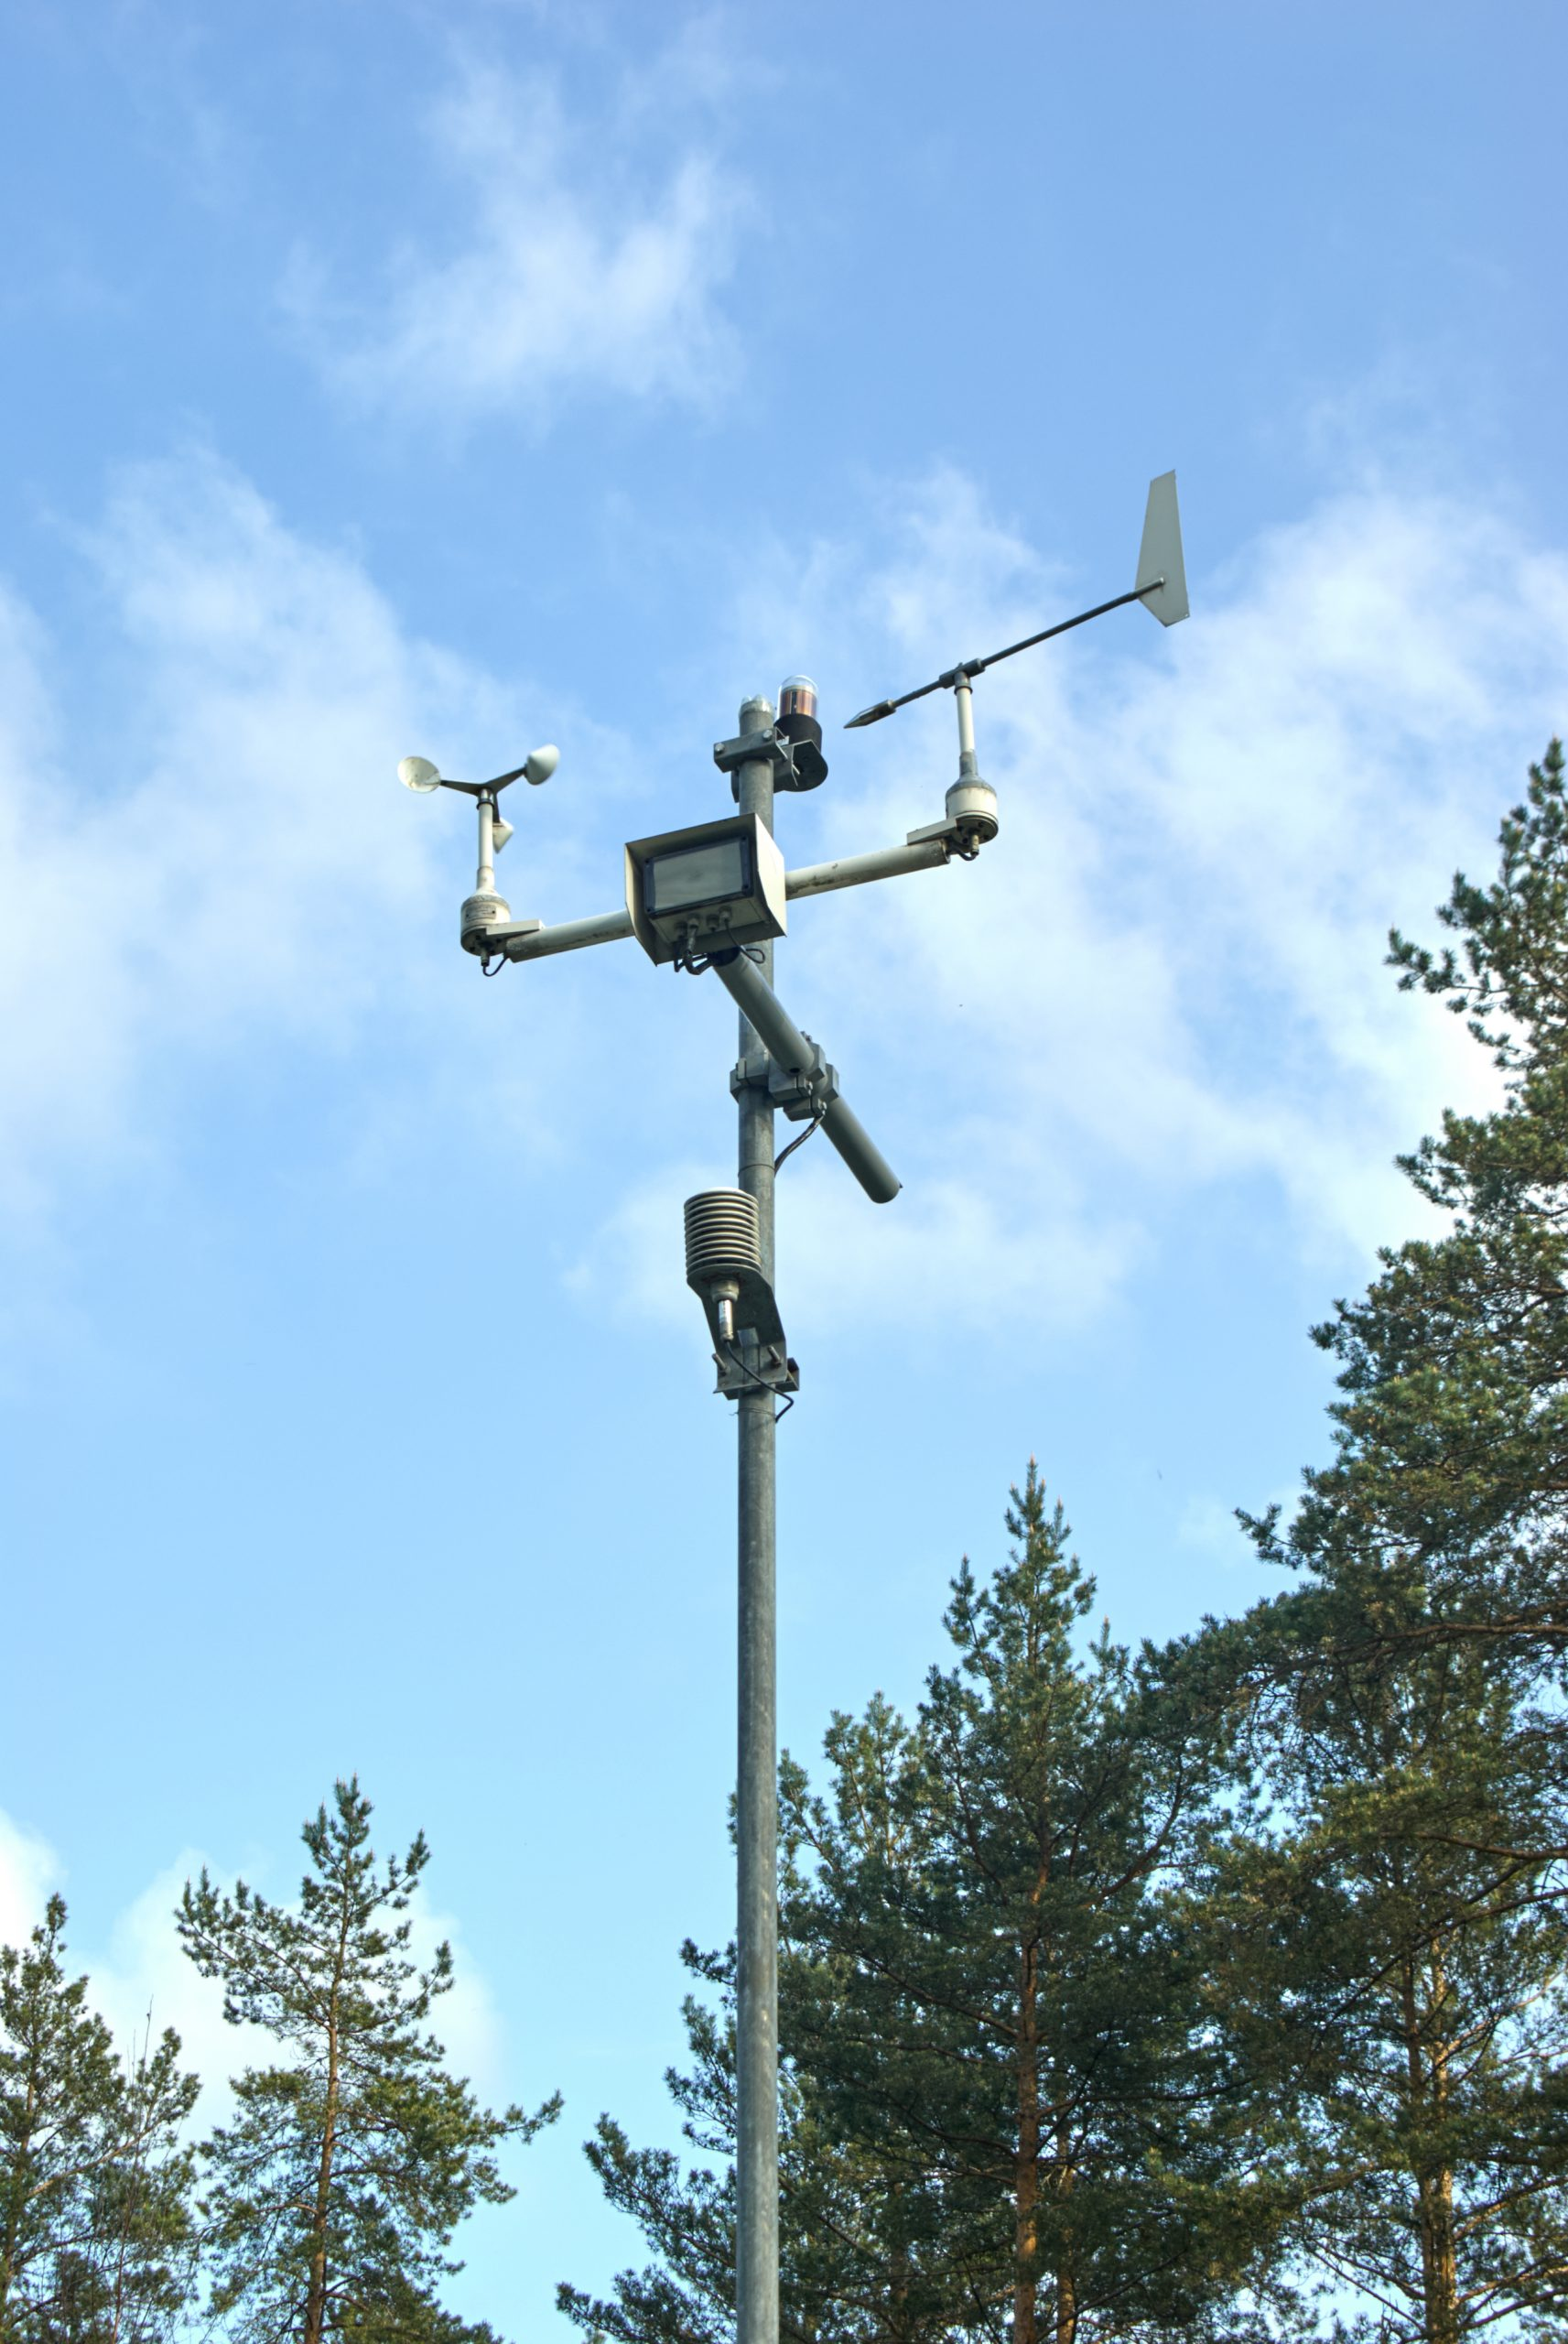 Meteorological station measuring temperature and wind speed